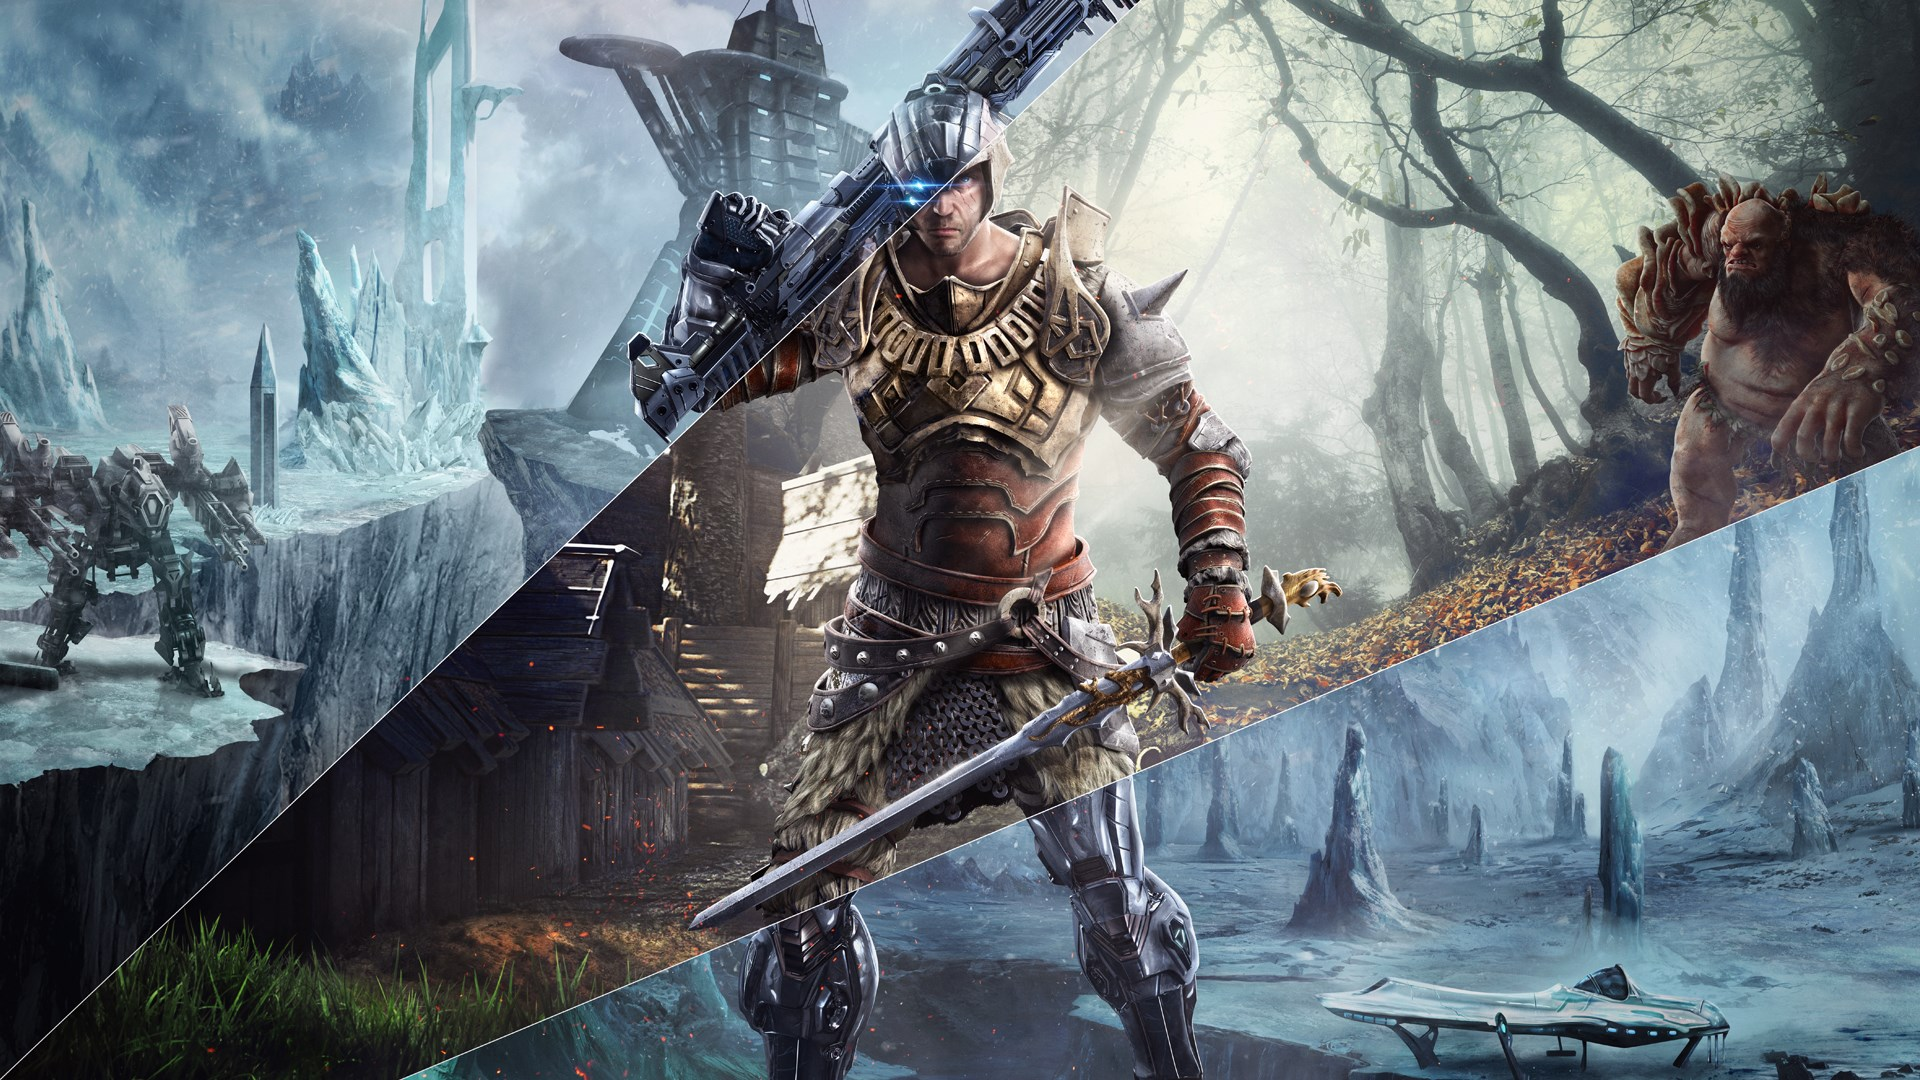 Buy Elex - Microsoft Store en-CA Dragon S Dogma World Map on resident evil world map, the walking dead world map, sacred 3 world map, tales of zestiria world map, dragon age: inquisition world map, euro truck simulator 2 world map, infamous second son world map, conker's bad fur day world map, half-life 2 world map, bound by flame world map, dragon s dogma grand map, starbound world map, hyperdimension neptunia world map, civilization revolution world map, the last remnant world map, seiken densetsu 3 world map, need for speed rivals world map, the last of us world map, 3d dot game heroes world map, battlefield 4 world map,